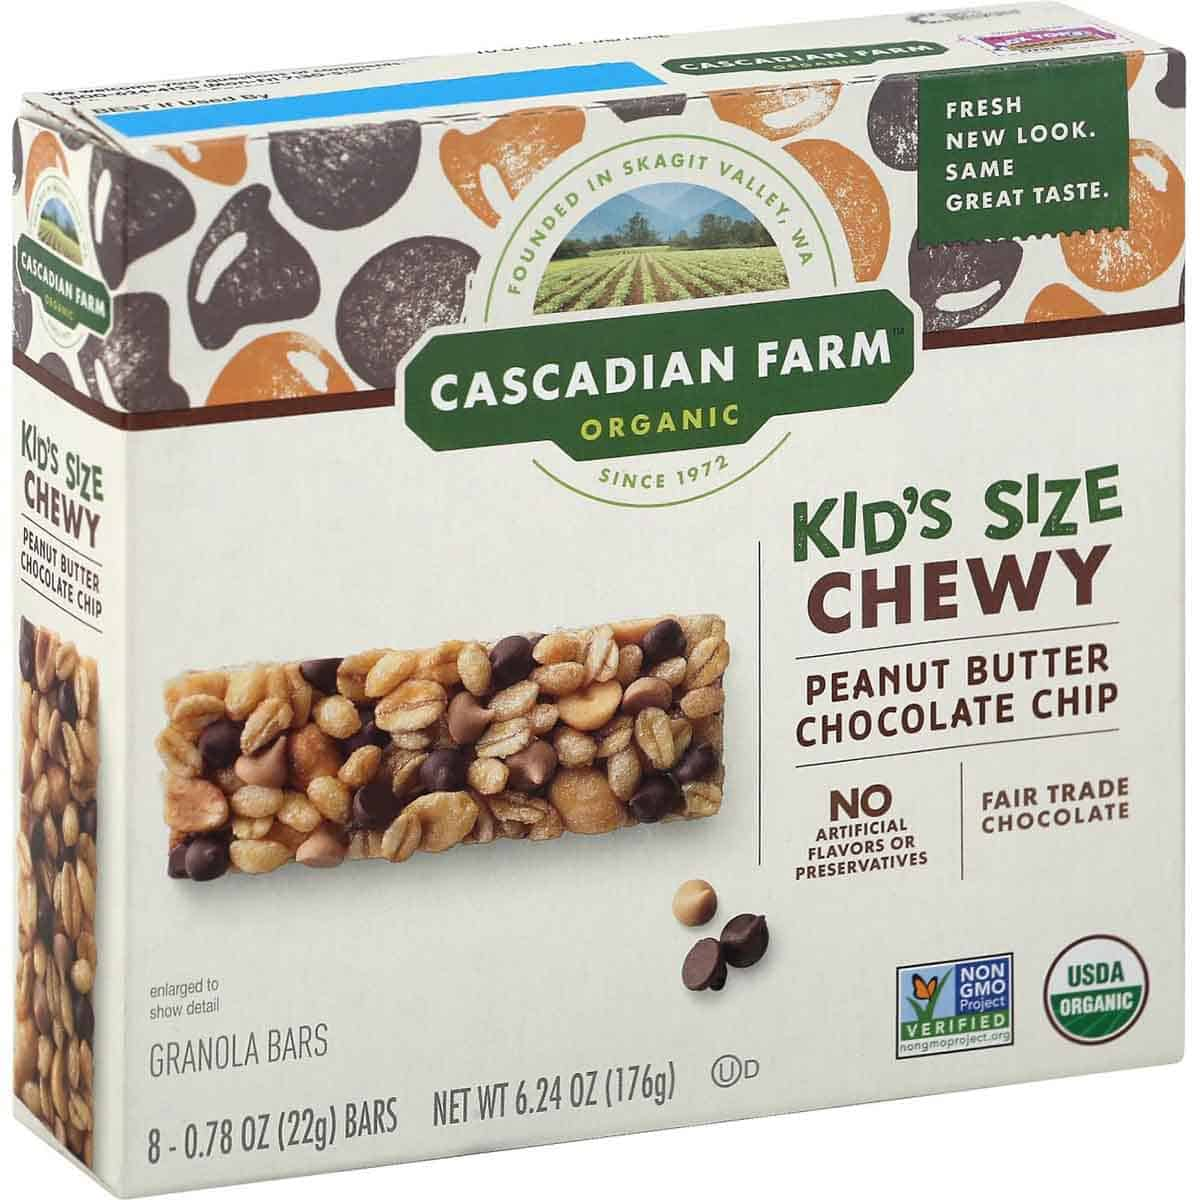 """A box of peanut butter chocolate chip bars by the brand """"Cascadian Farm""""."""